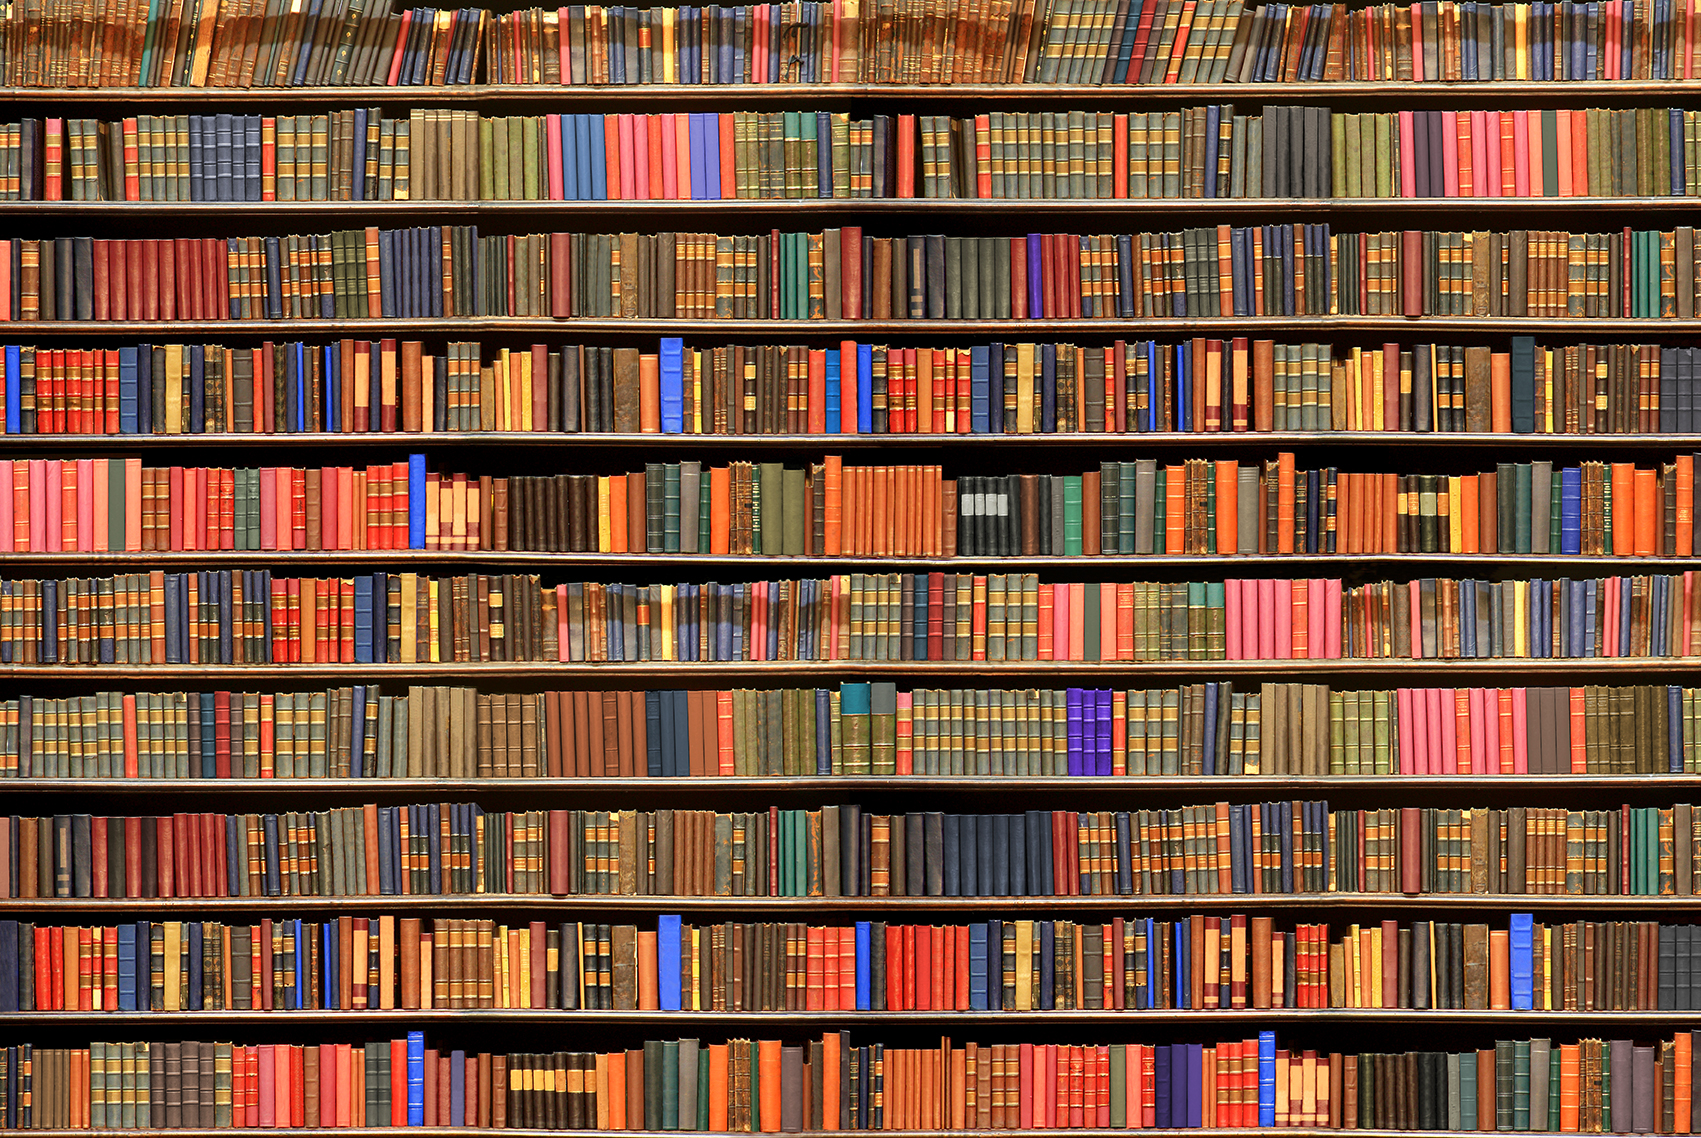 Bookshelves With Books ~ Il in libri stupefacenti salt editions